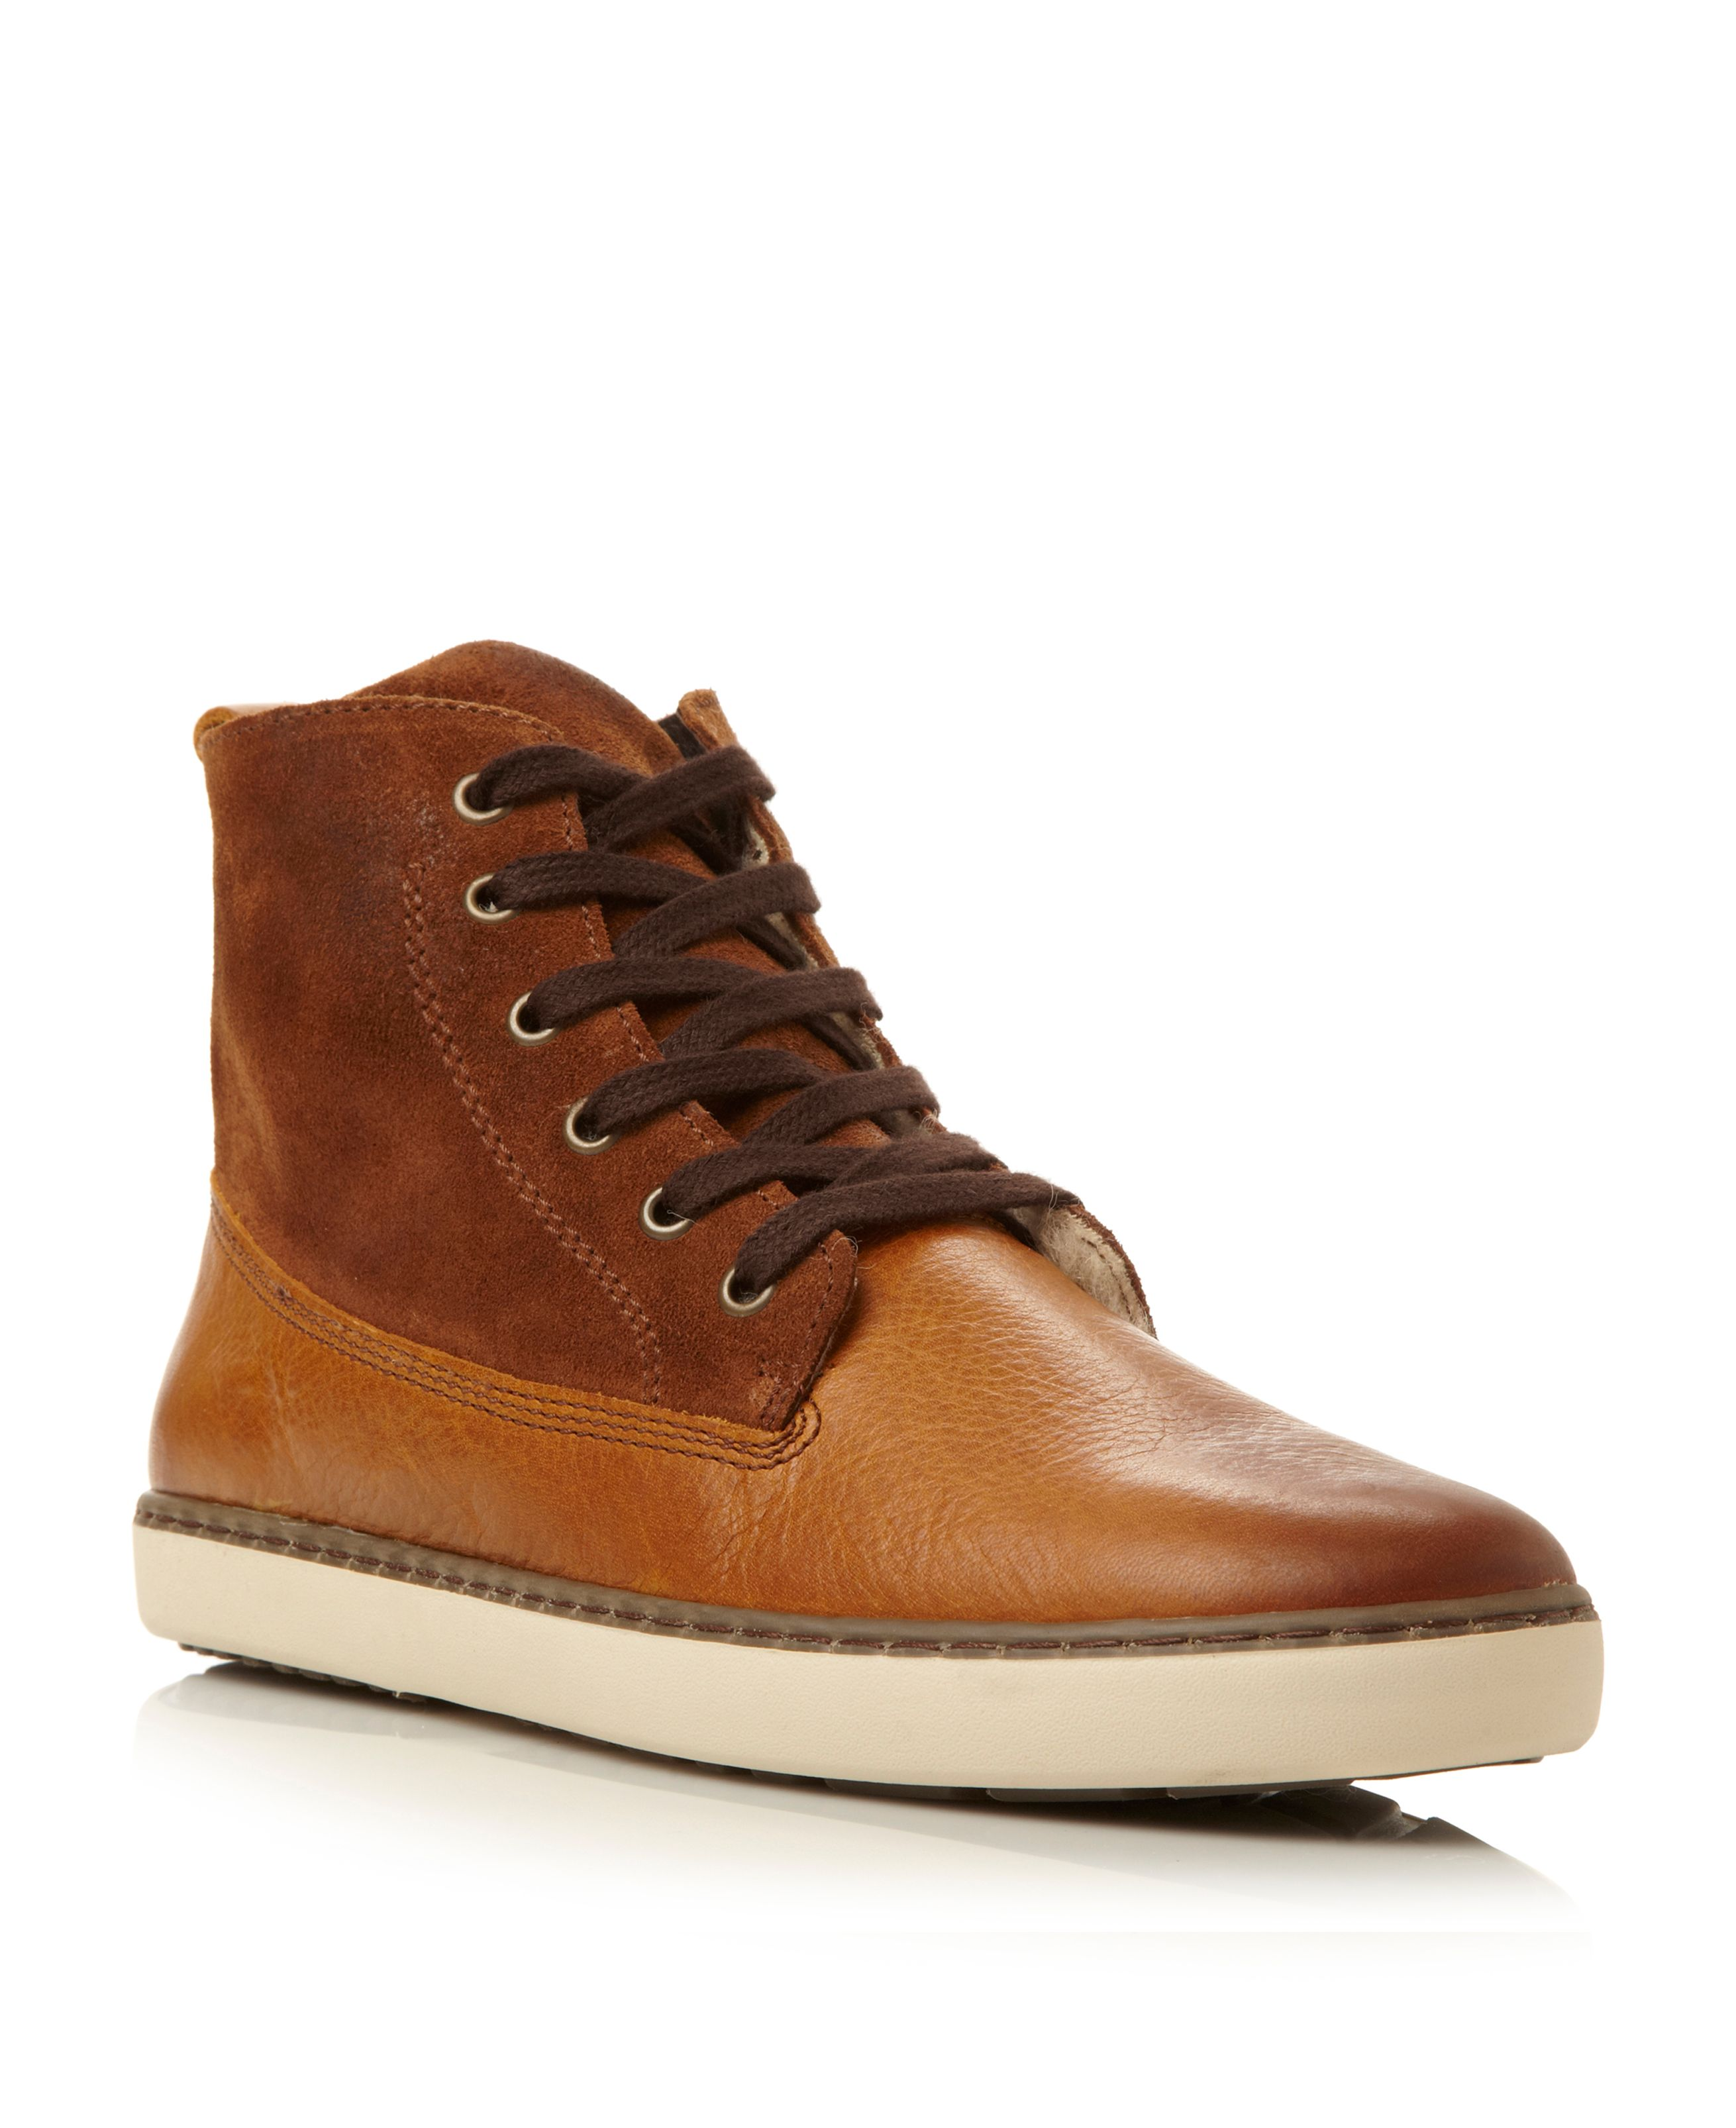 Springfield warm lined hi top boot